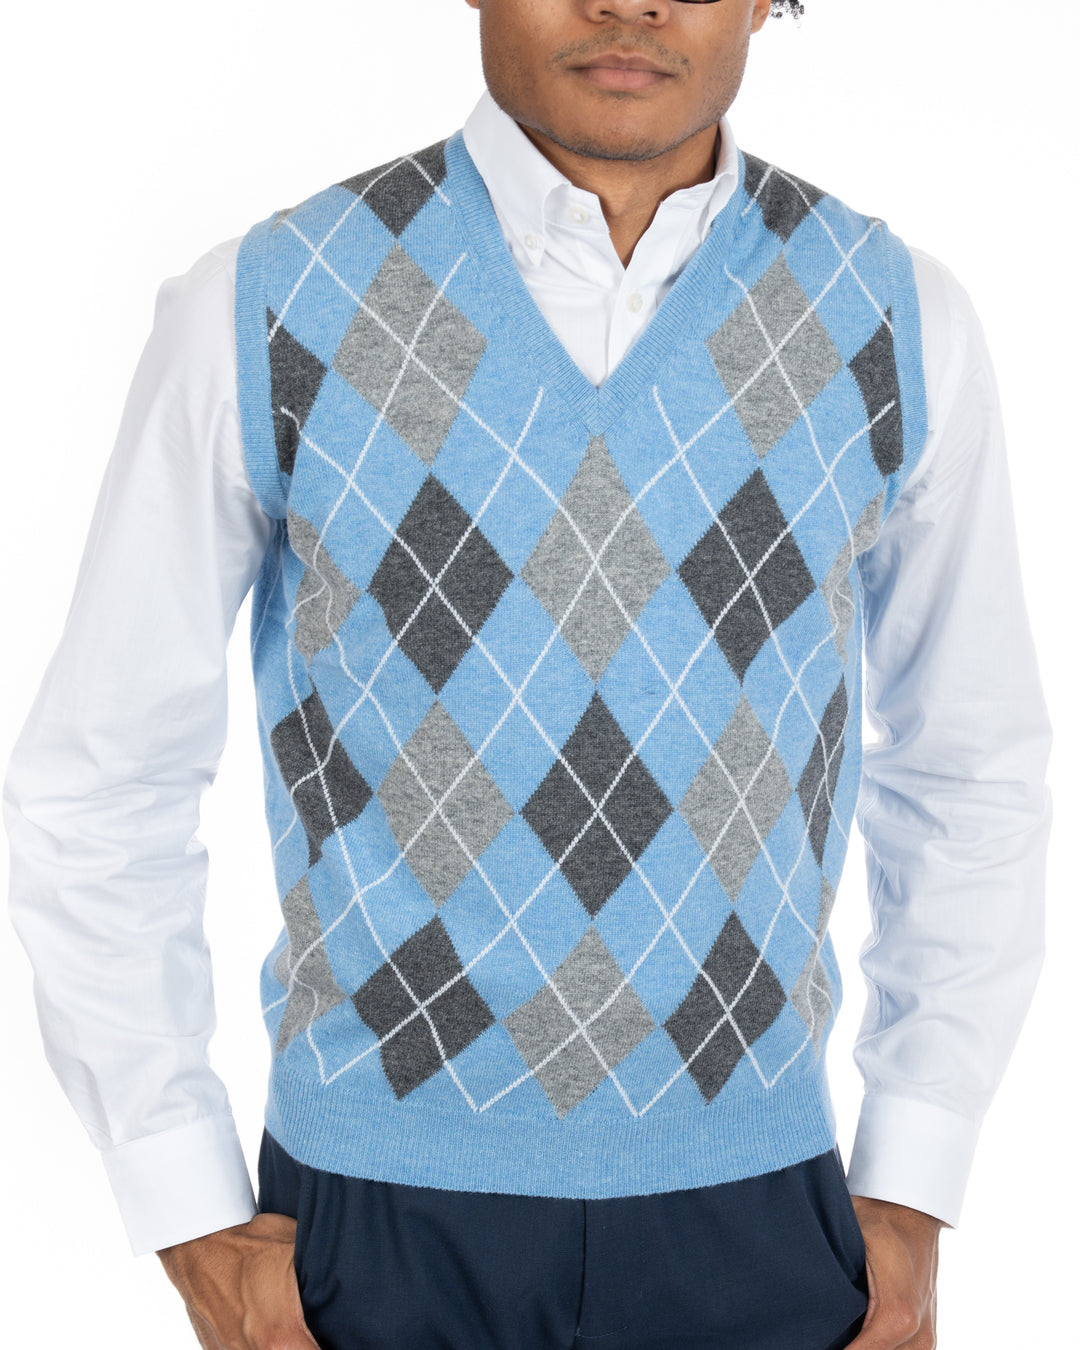 Argyle Geelong Lambswool Sweater Vest